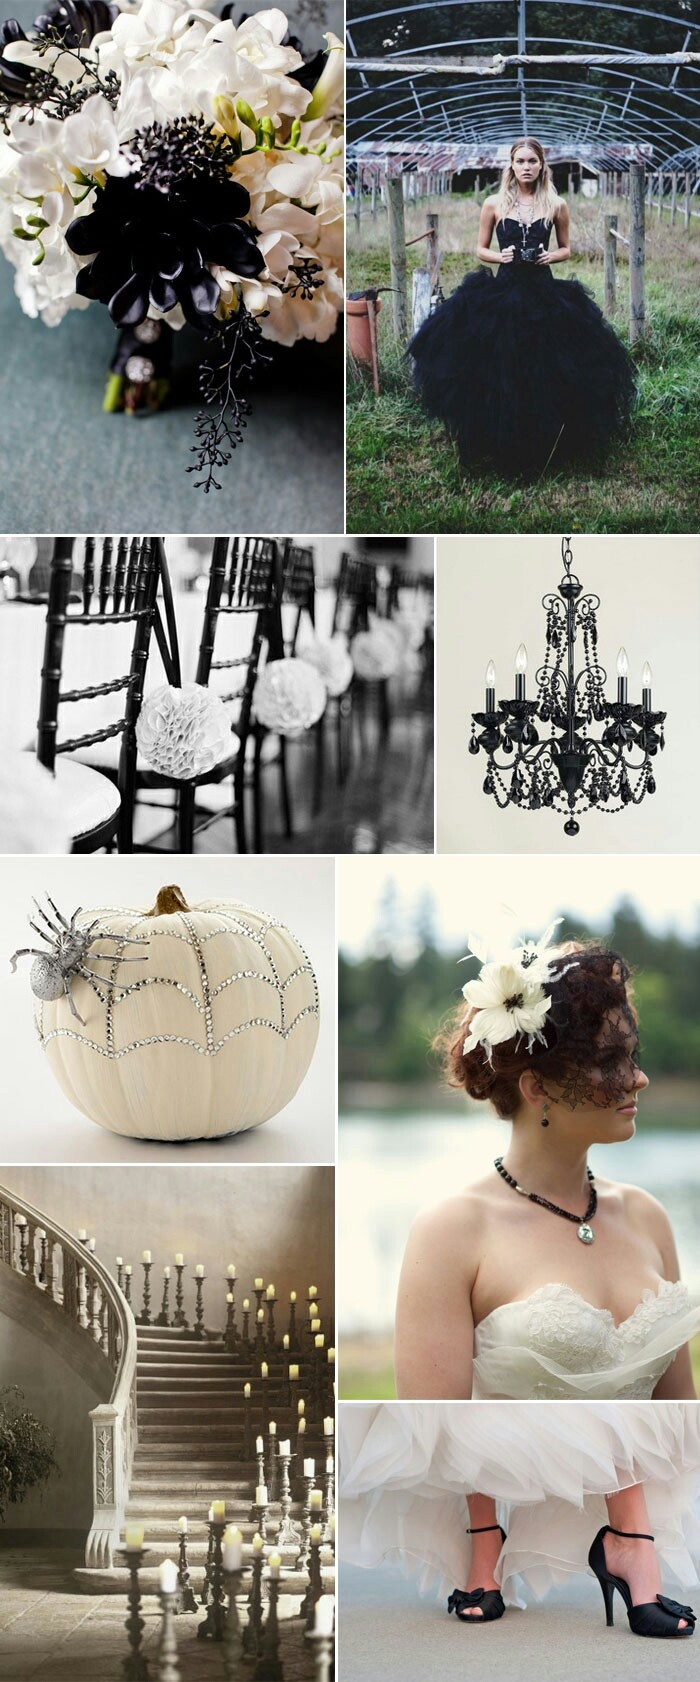 Halloween wedding. Maybe a vow renewal ceremony is in order here in another year or so?